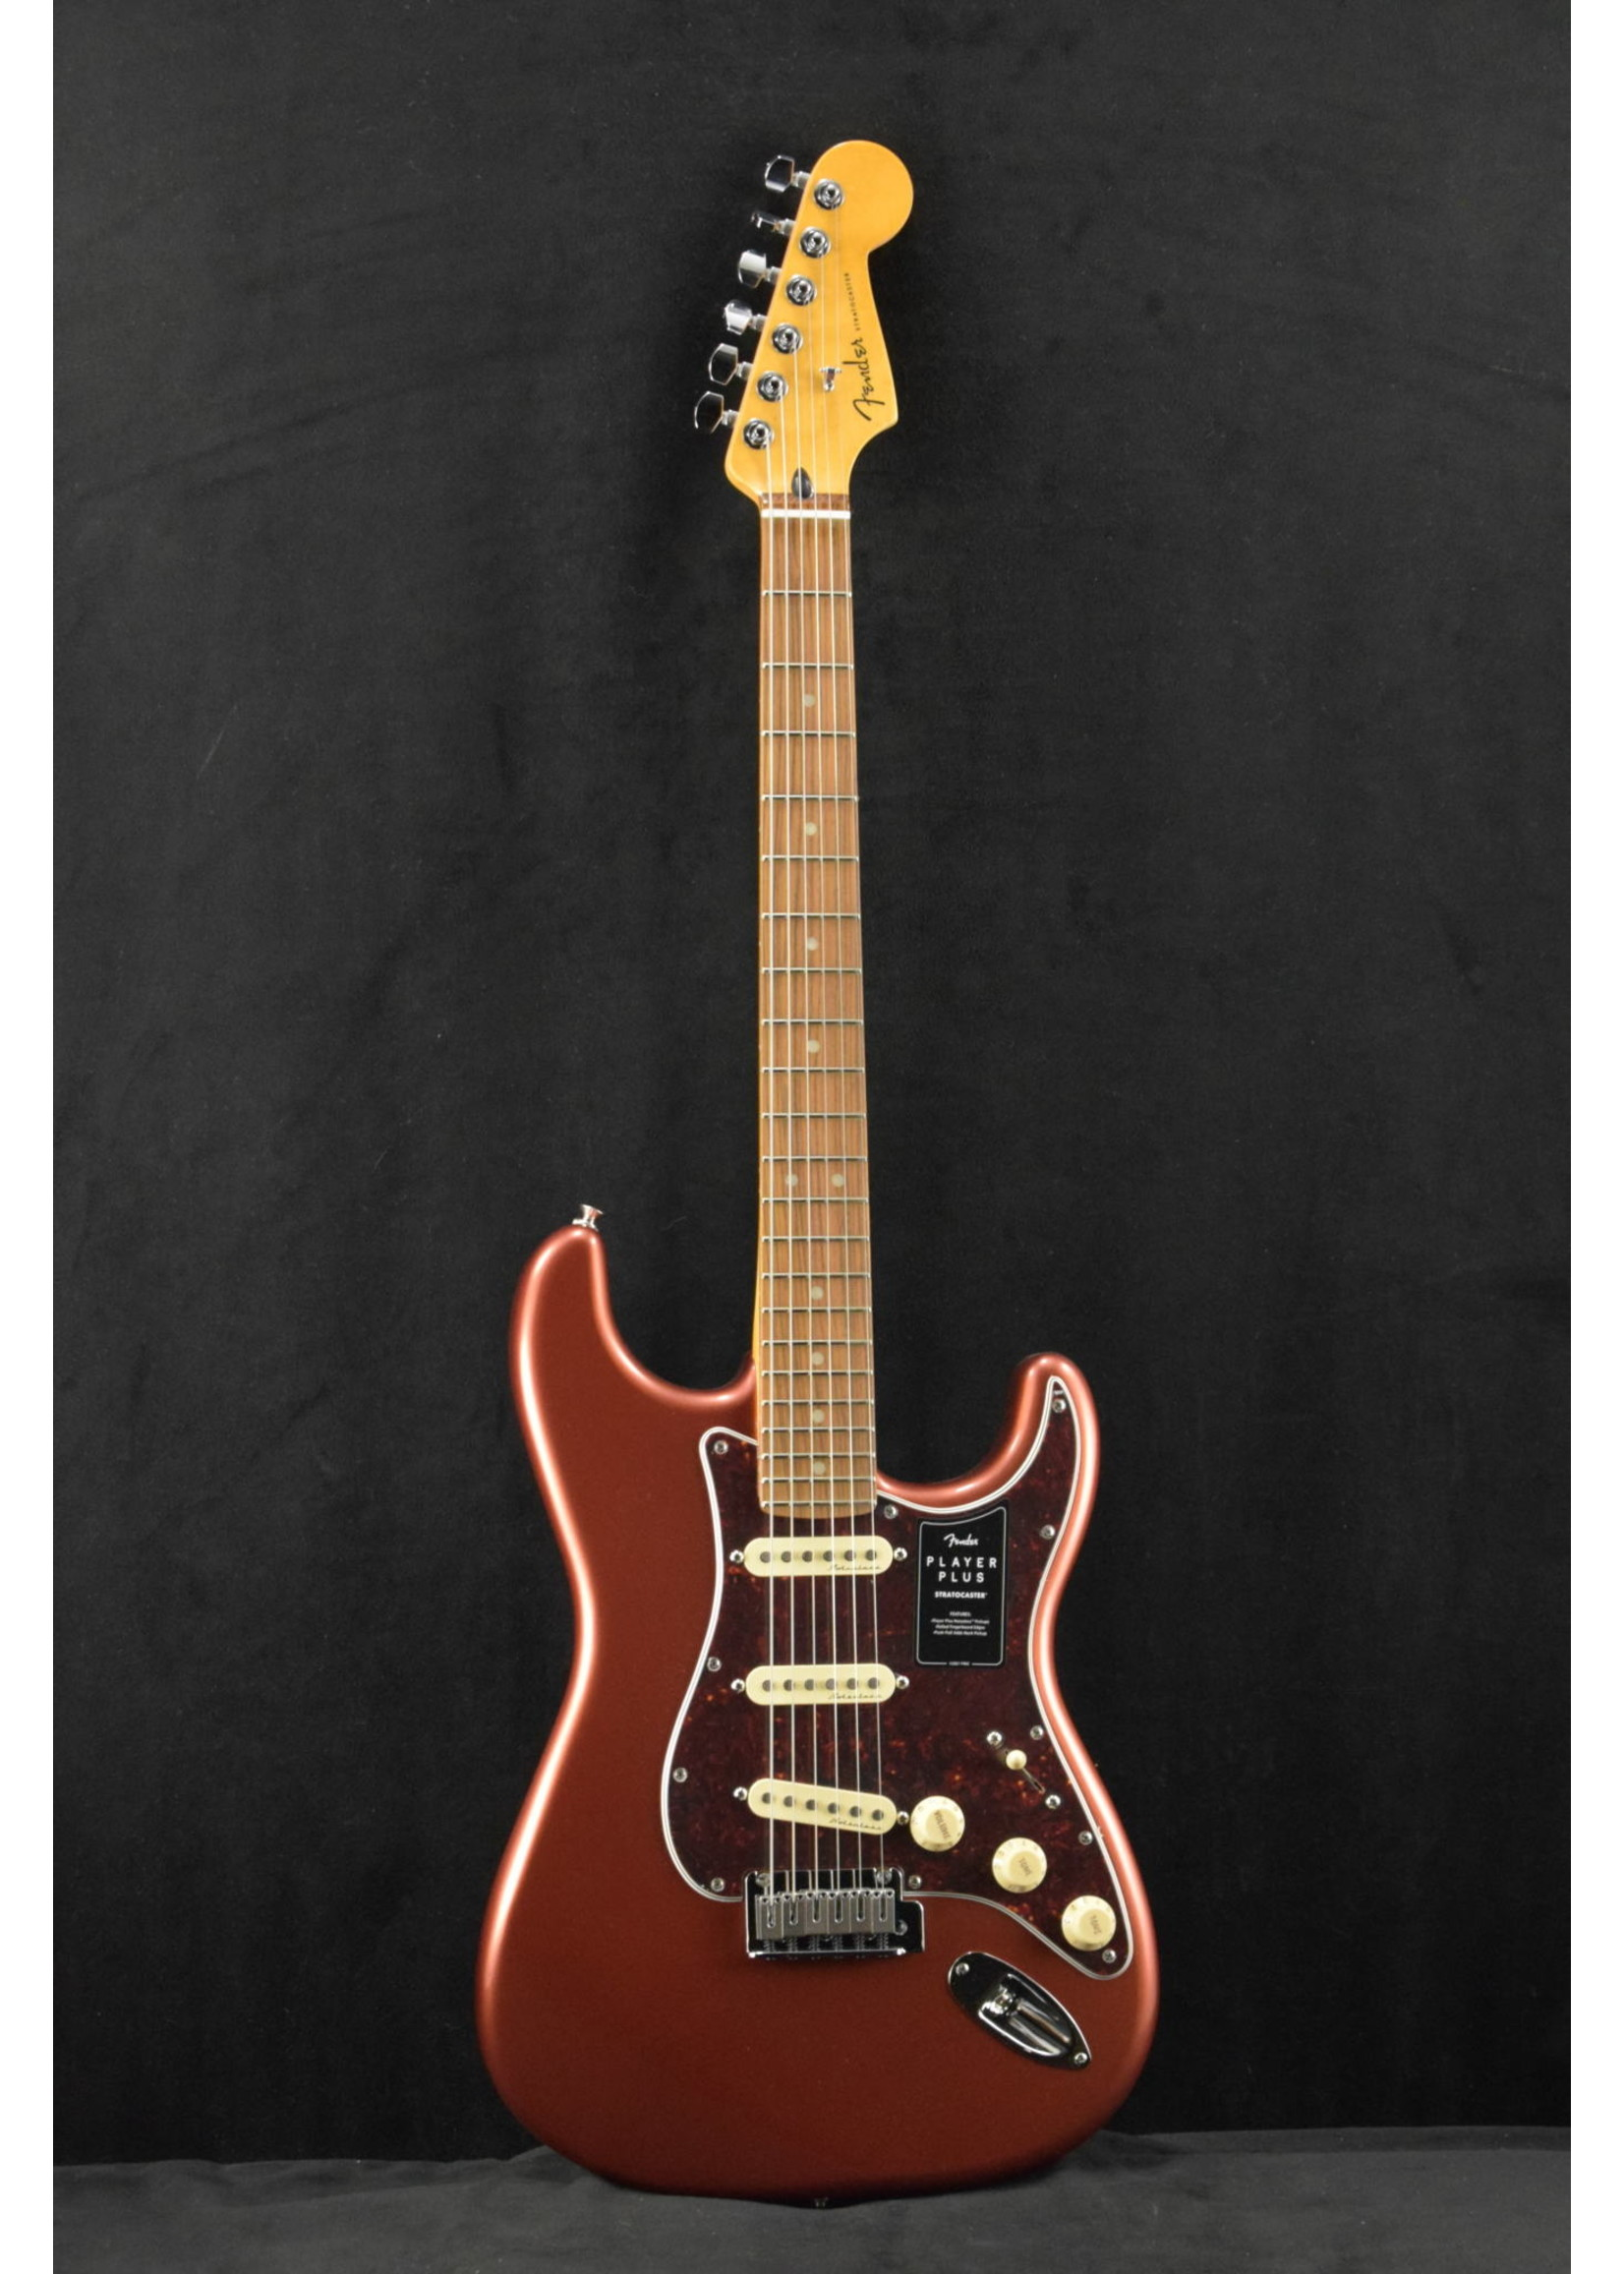 Fender Fender Player Plus Stratocaster Aged Candy Apple Red